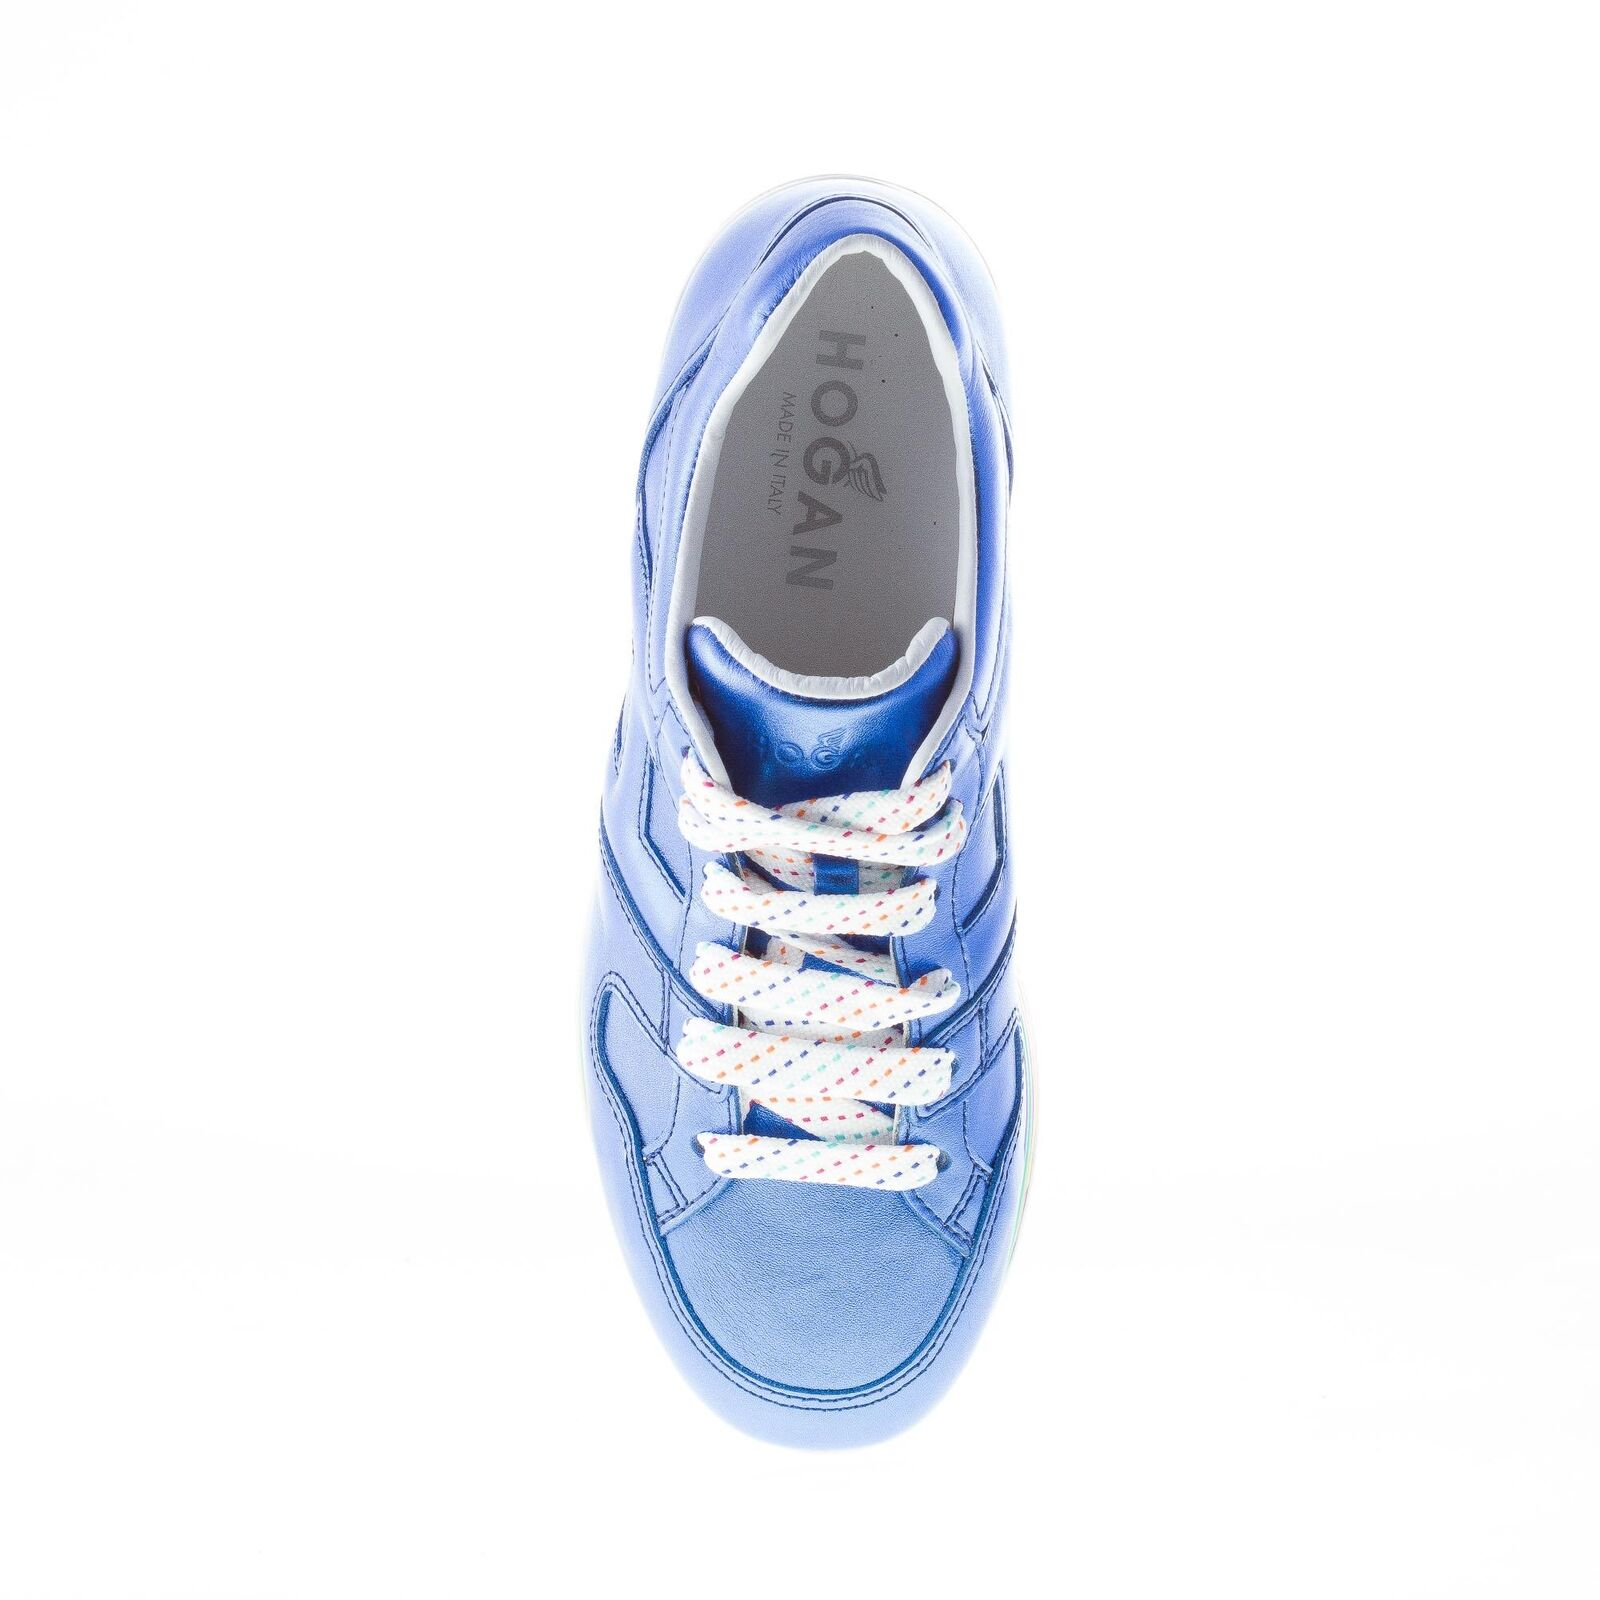 HOGAN femmes chaussures Maxi H222 bleutte metallic-effect leather baskets with with with wedge 4d4e12